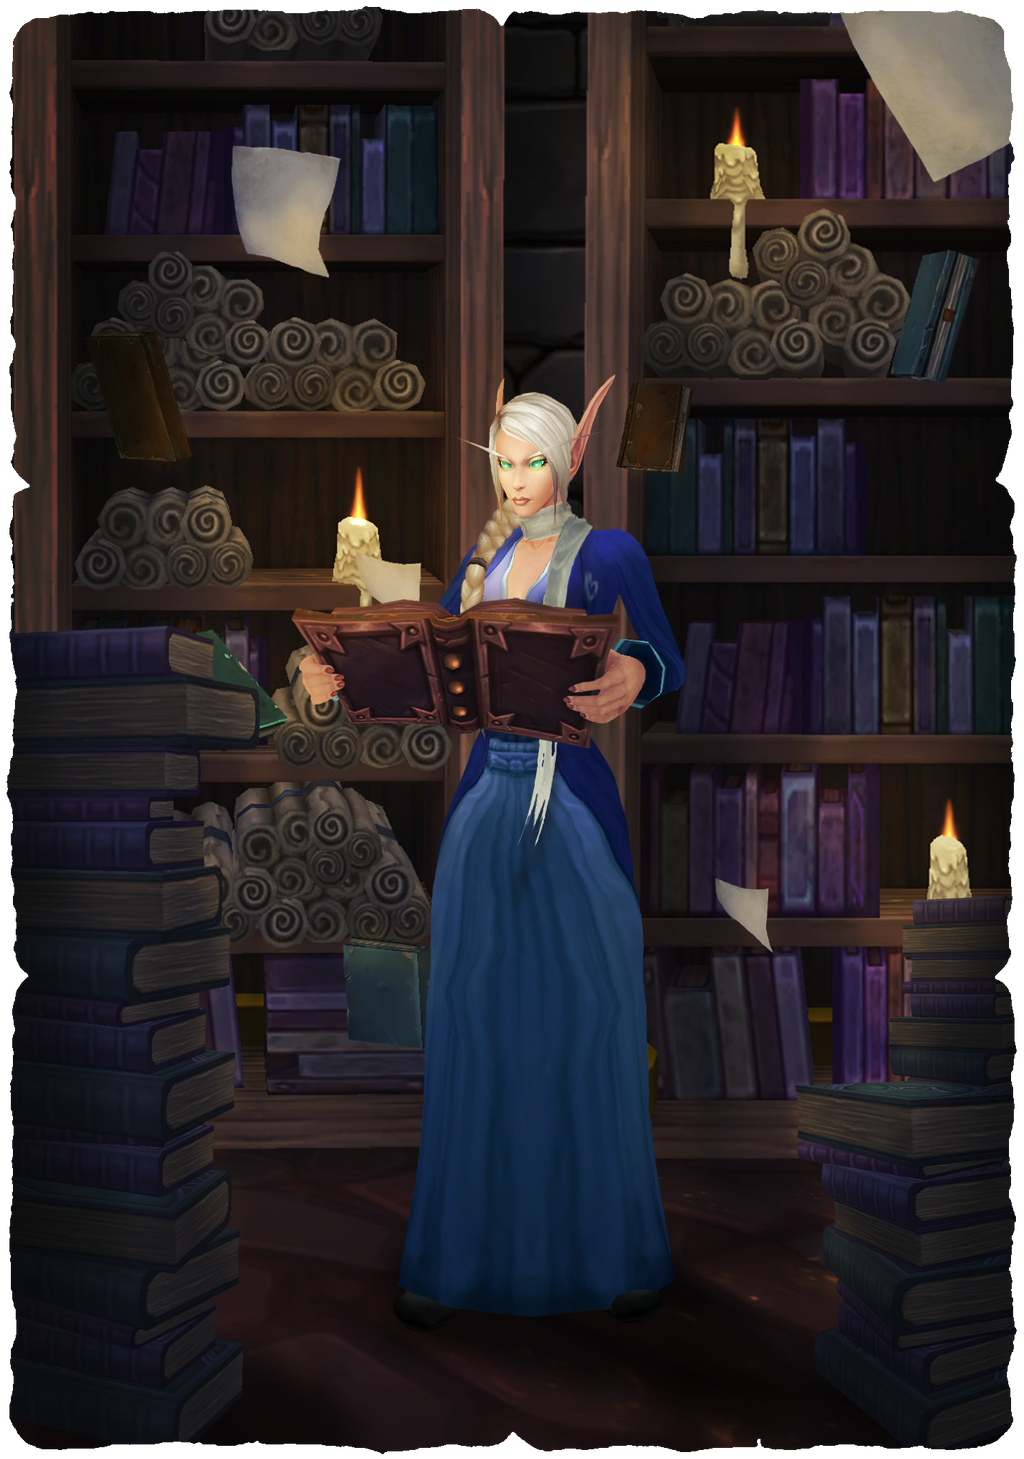 The Bookworm